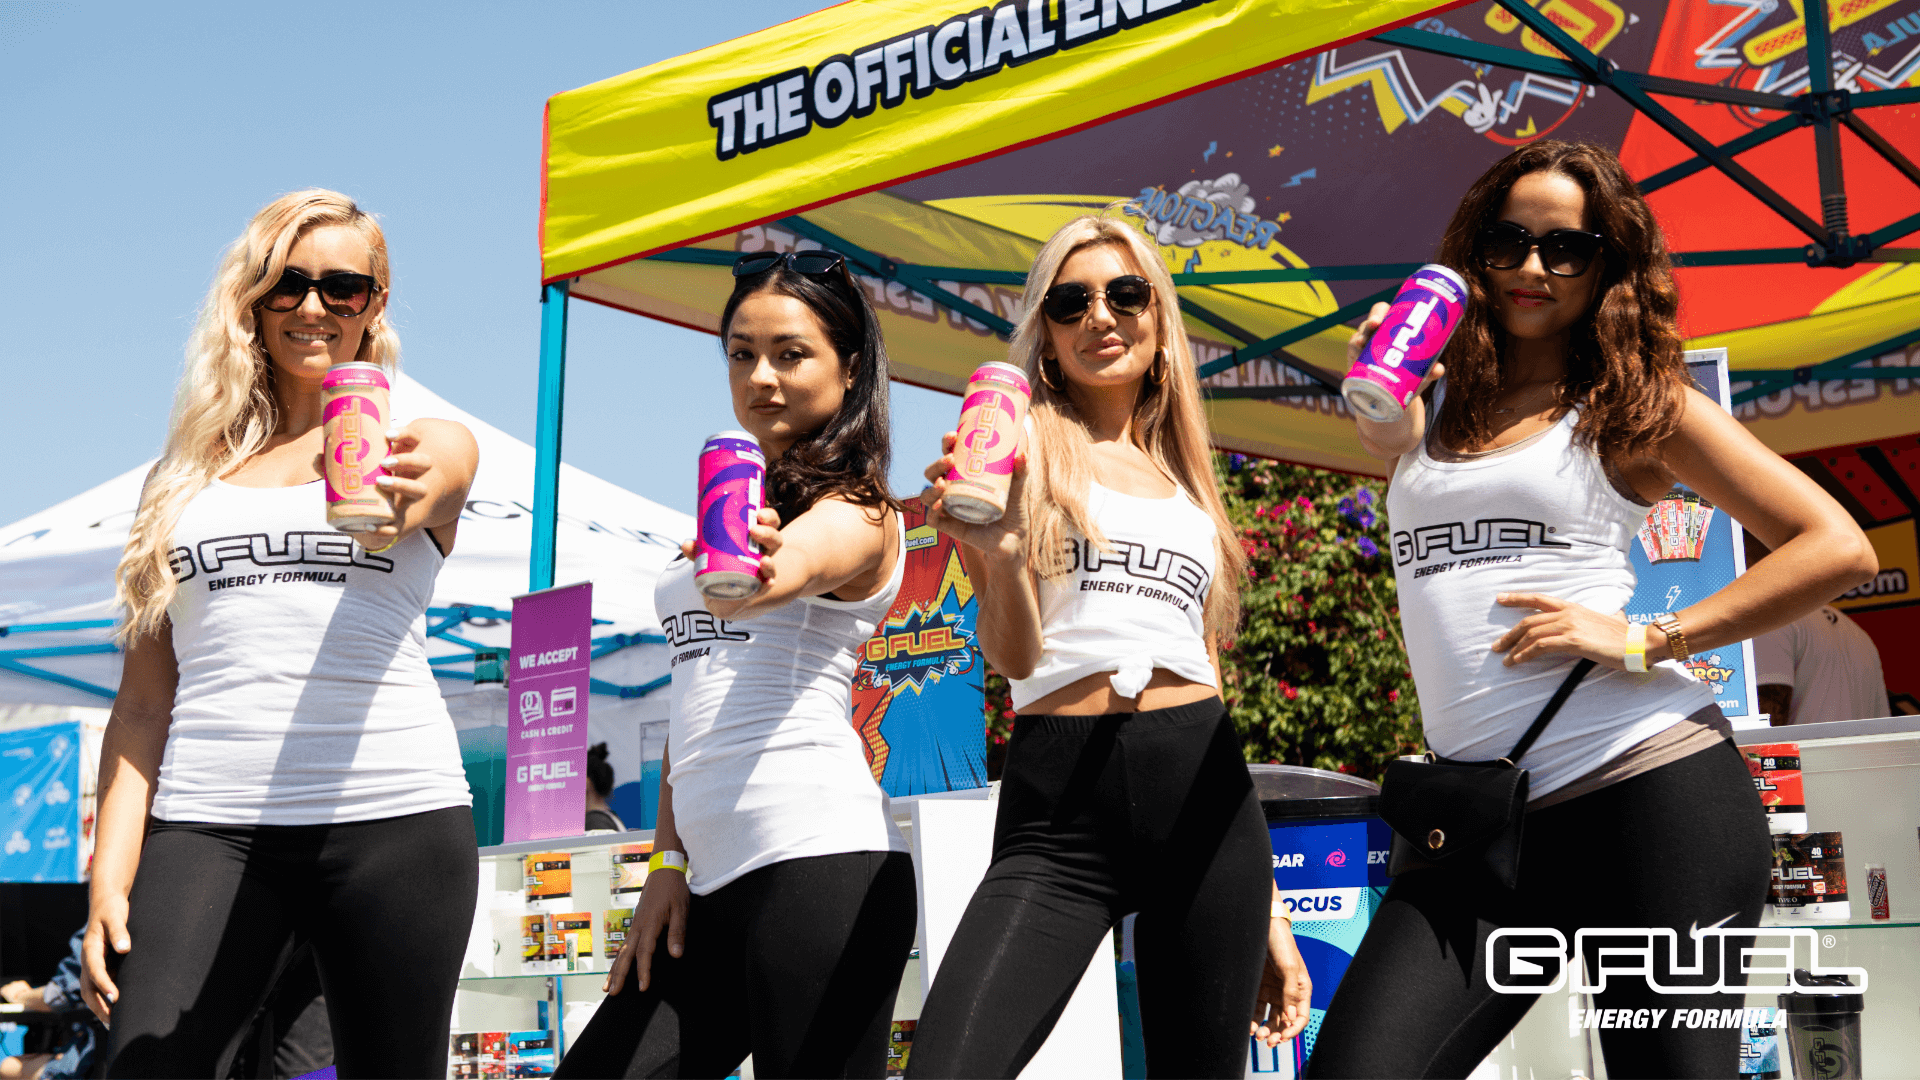 G FUEL girls holding Rainbow Sherbert and FaZeberry G FUEL cans at BLAST Pro Series Los Angeles 2019